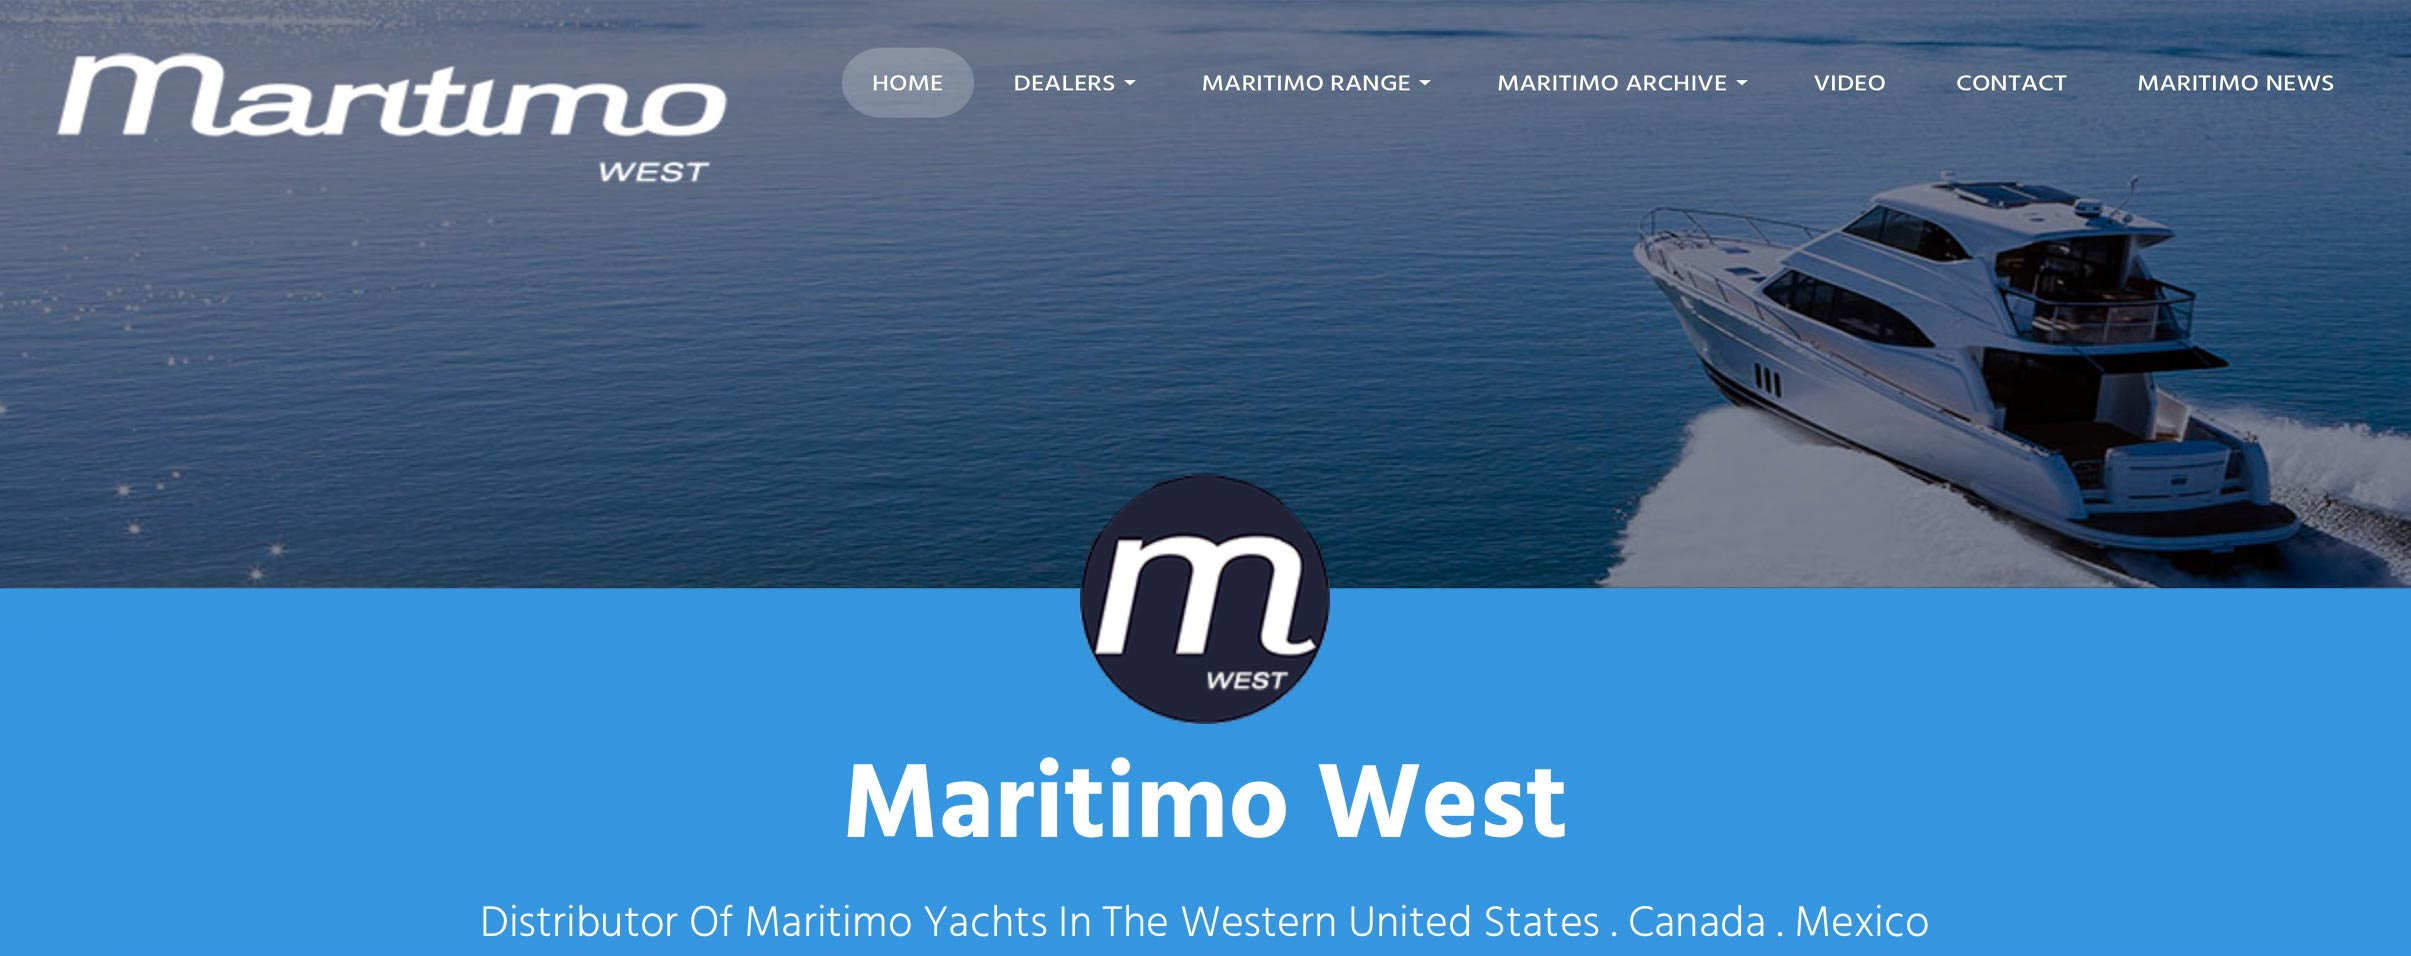 matitimo-west-banner